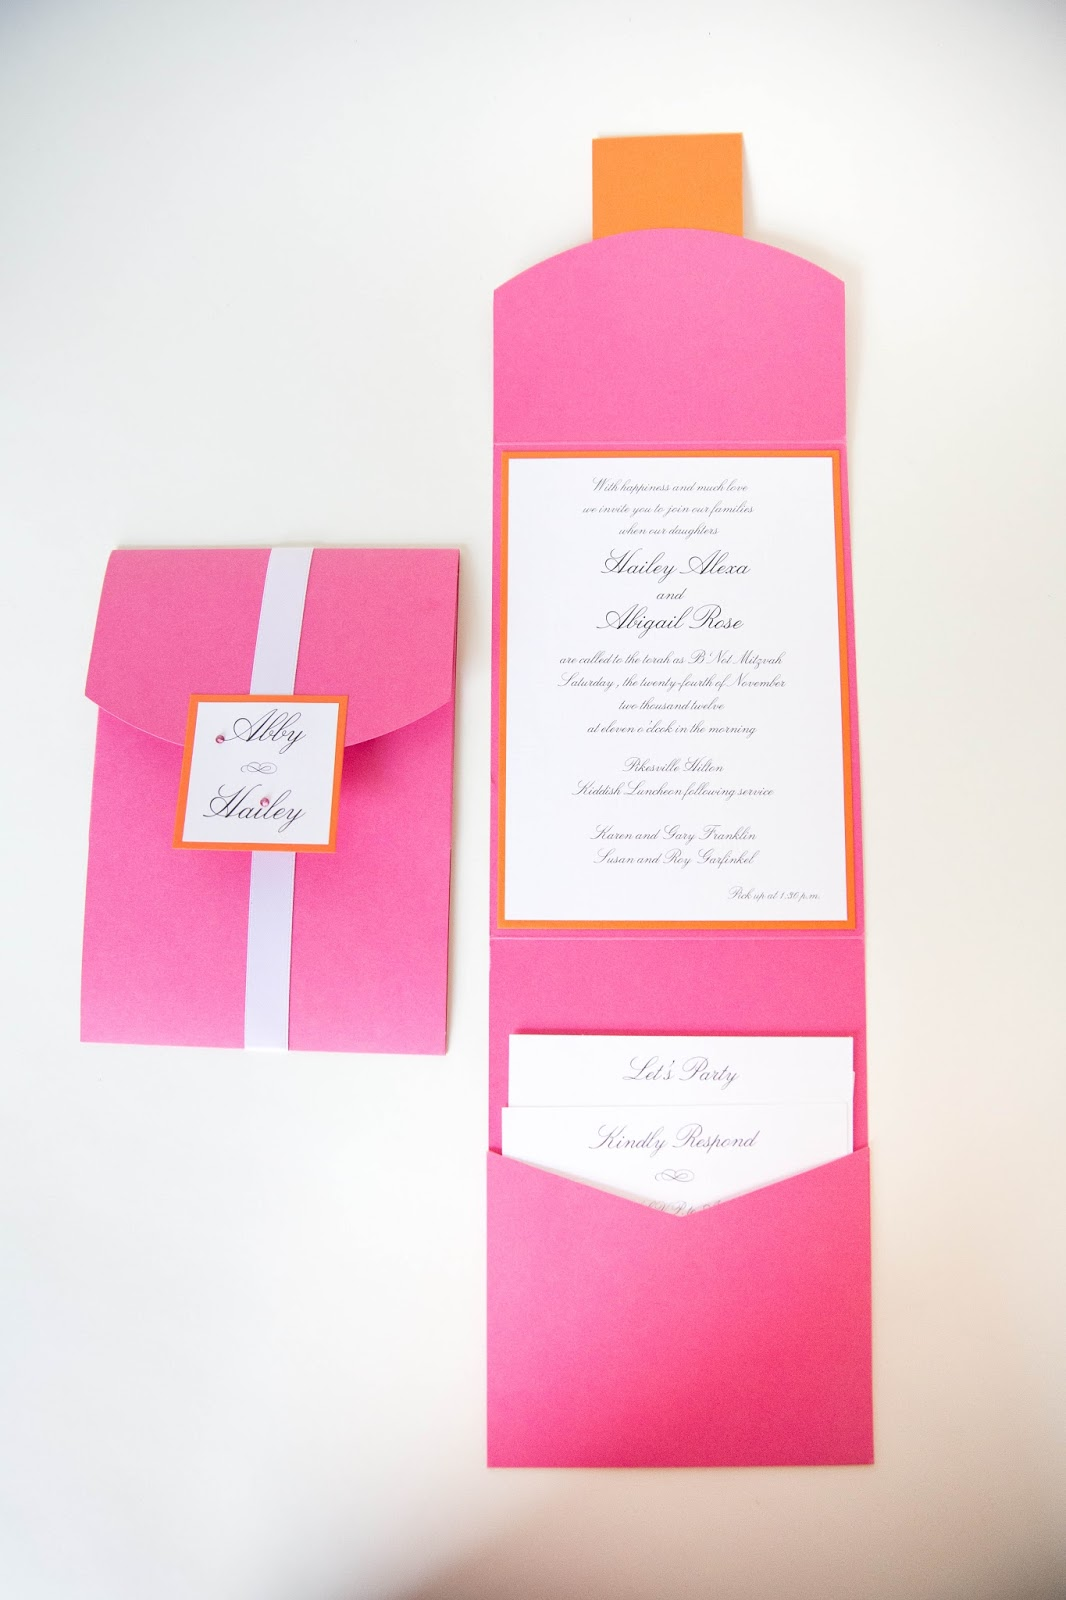 Bat Mitzvah Invitations • Pink and Orange - Kindly RSVP Designs